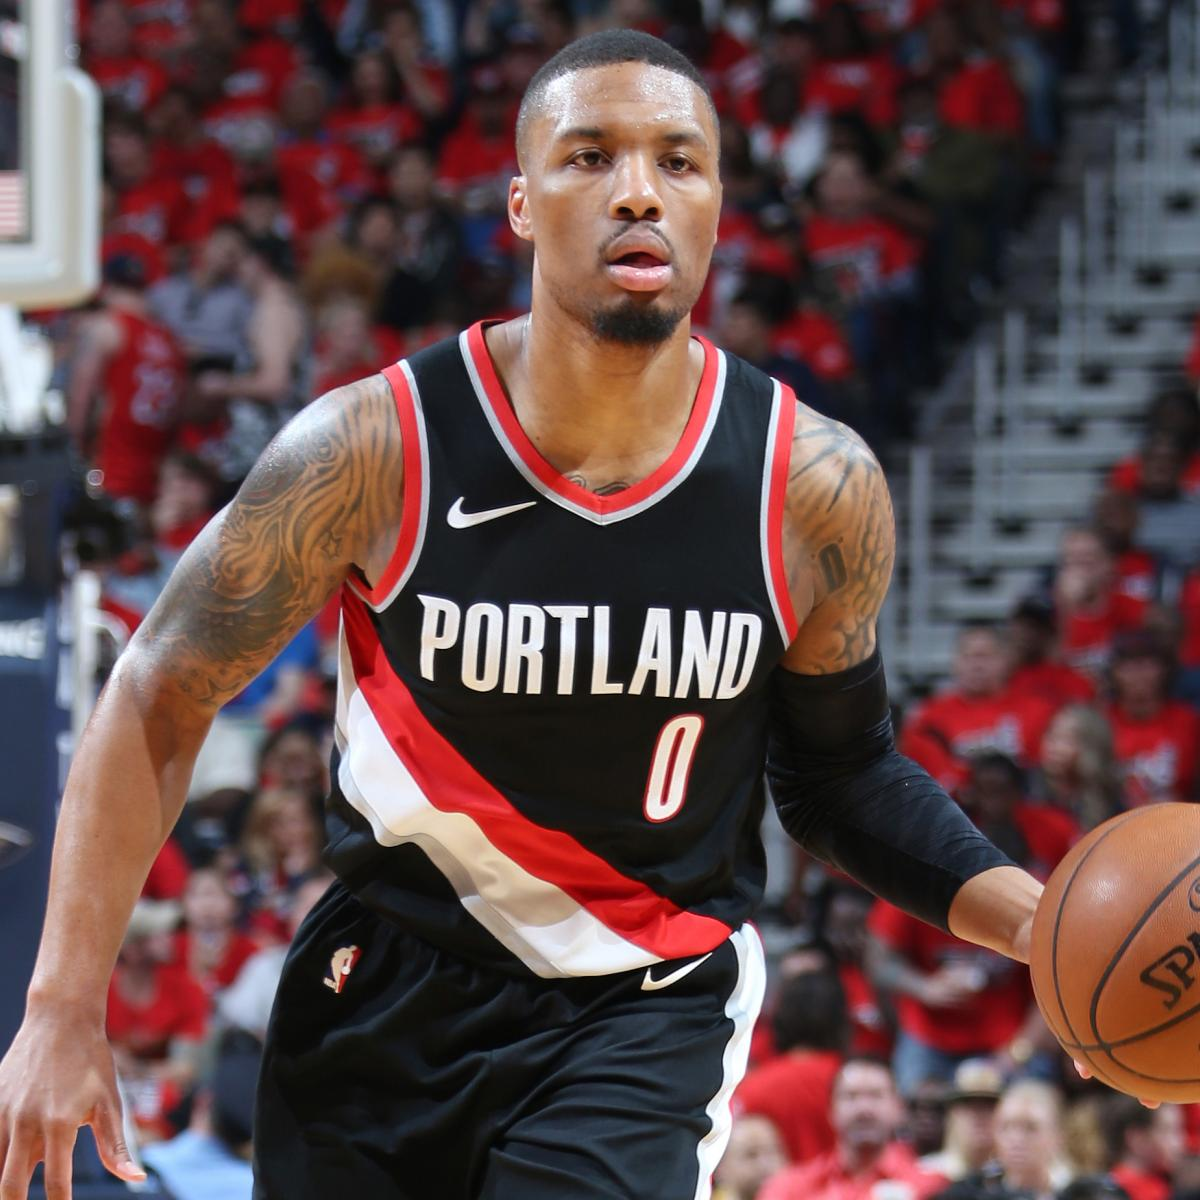 Portland Blazers Game: Damian Lillard Says Trail Blazers 'Still Capable' After